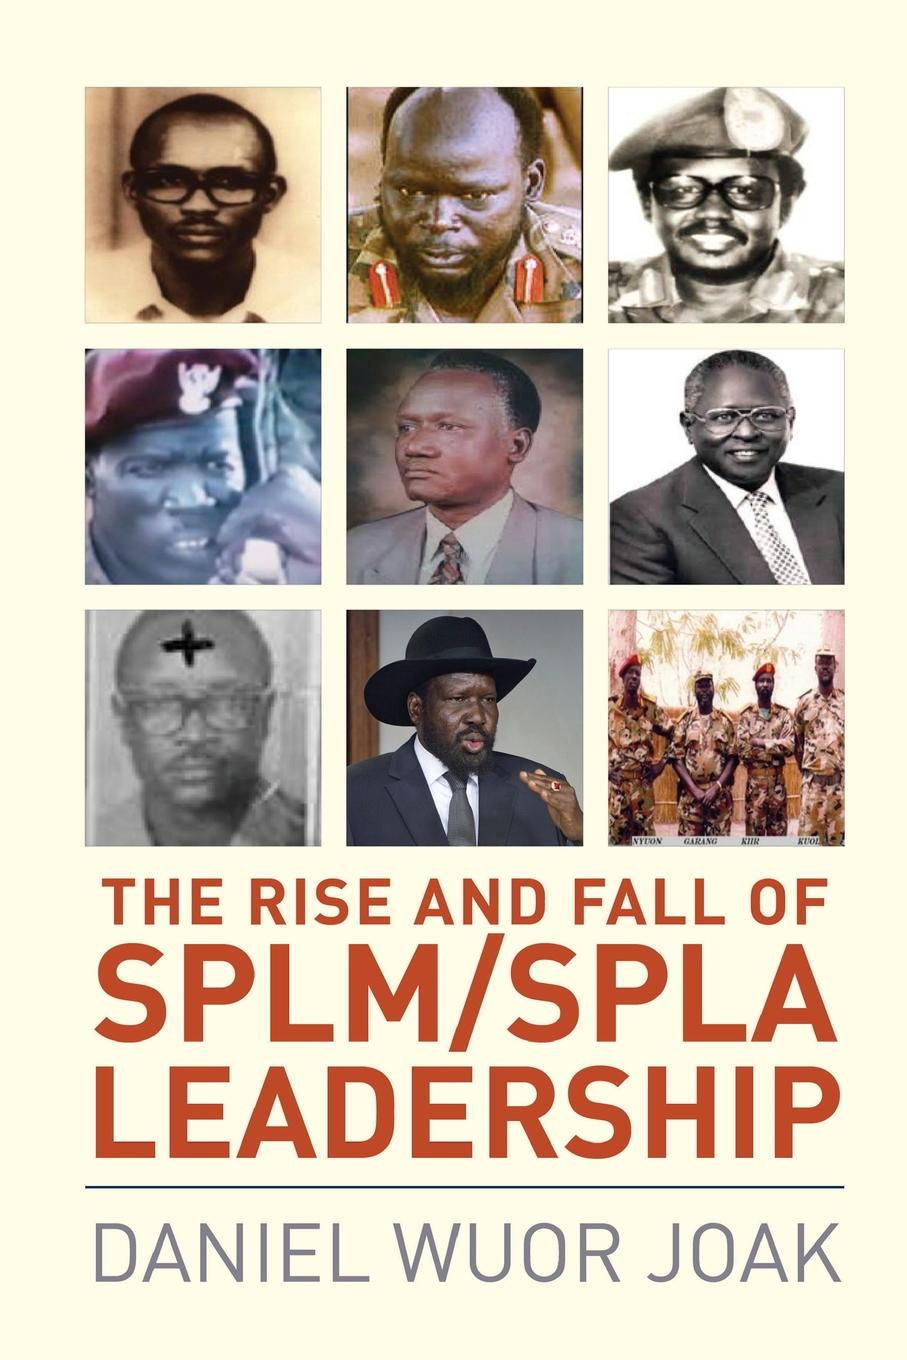 лучшая цена Daniel Wuor Joak The Rise and Fall of SPLM/SPLA Leadership